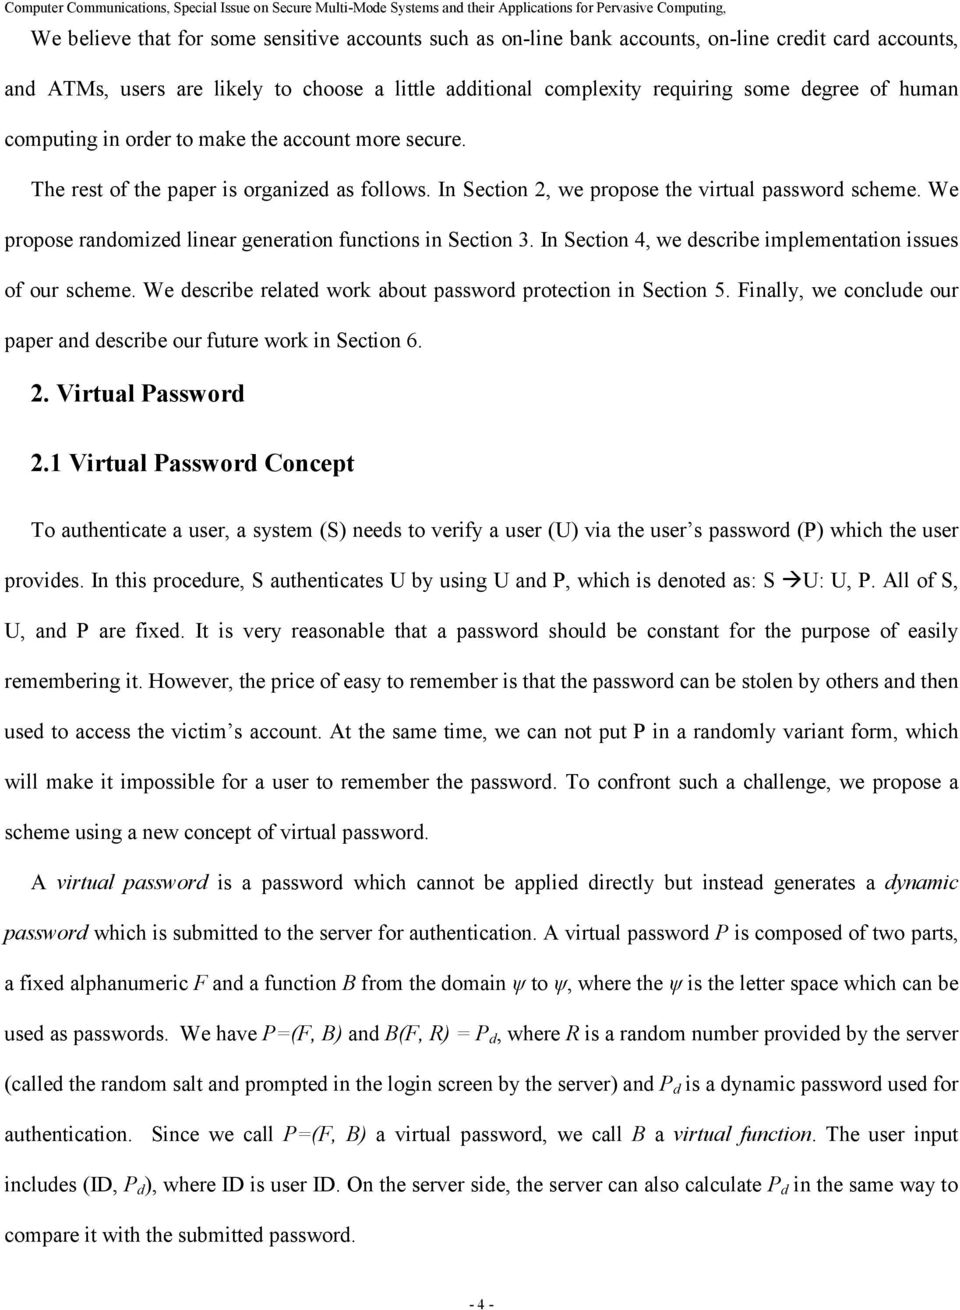 We propose randomized linear generation functions in Section 3. In Section 4, we describe implementation issues of our scheme. We describe related work about password protection in Section 5.